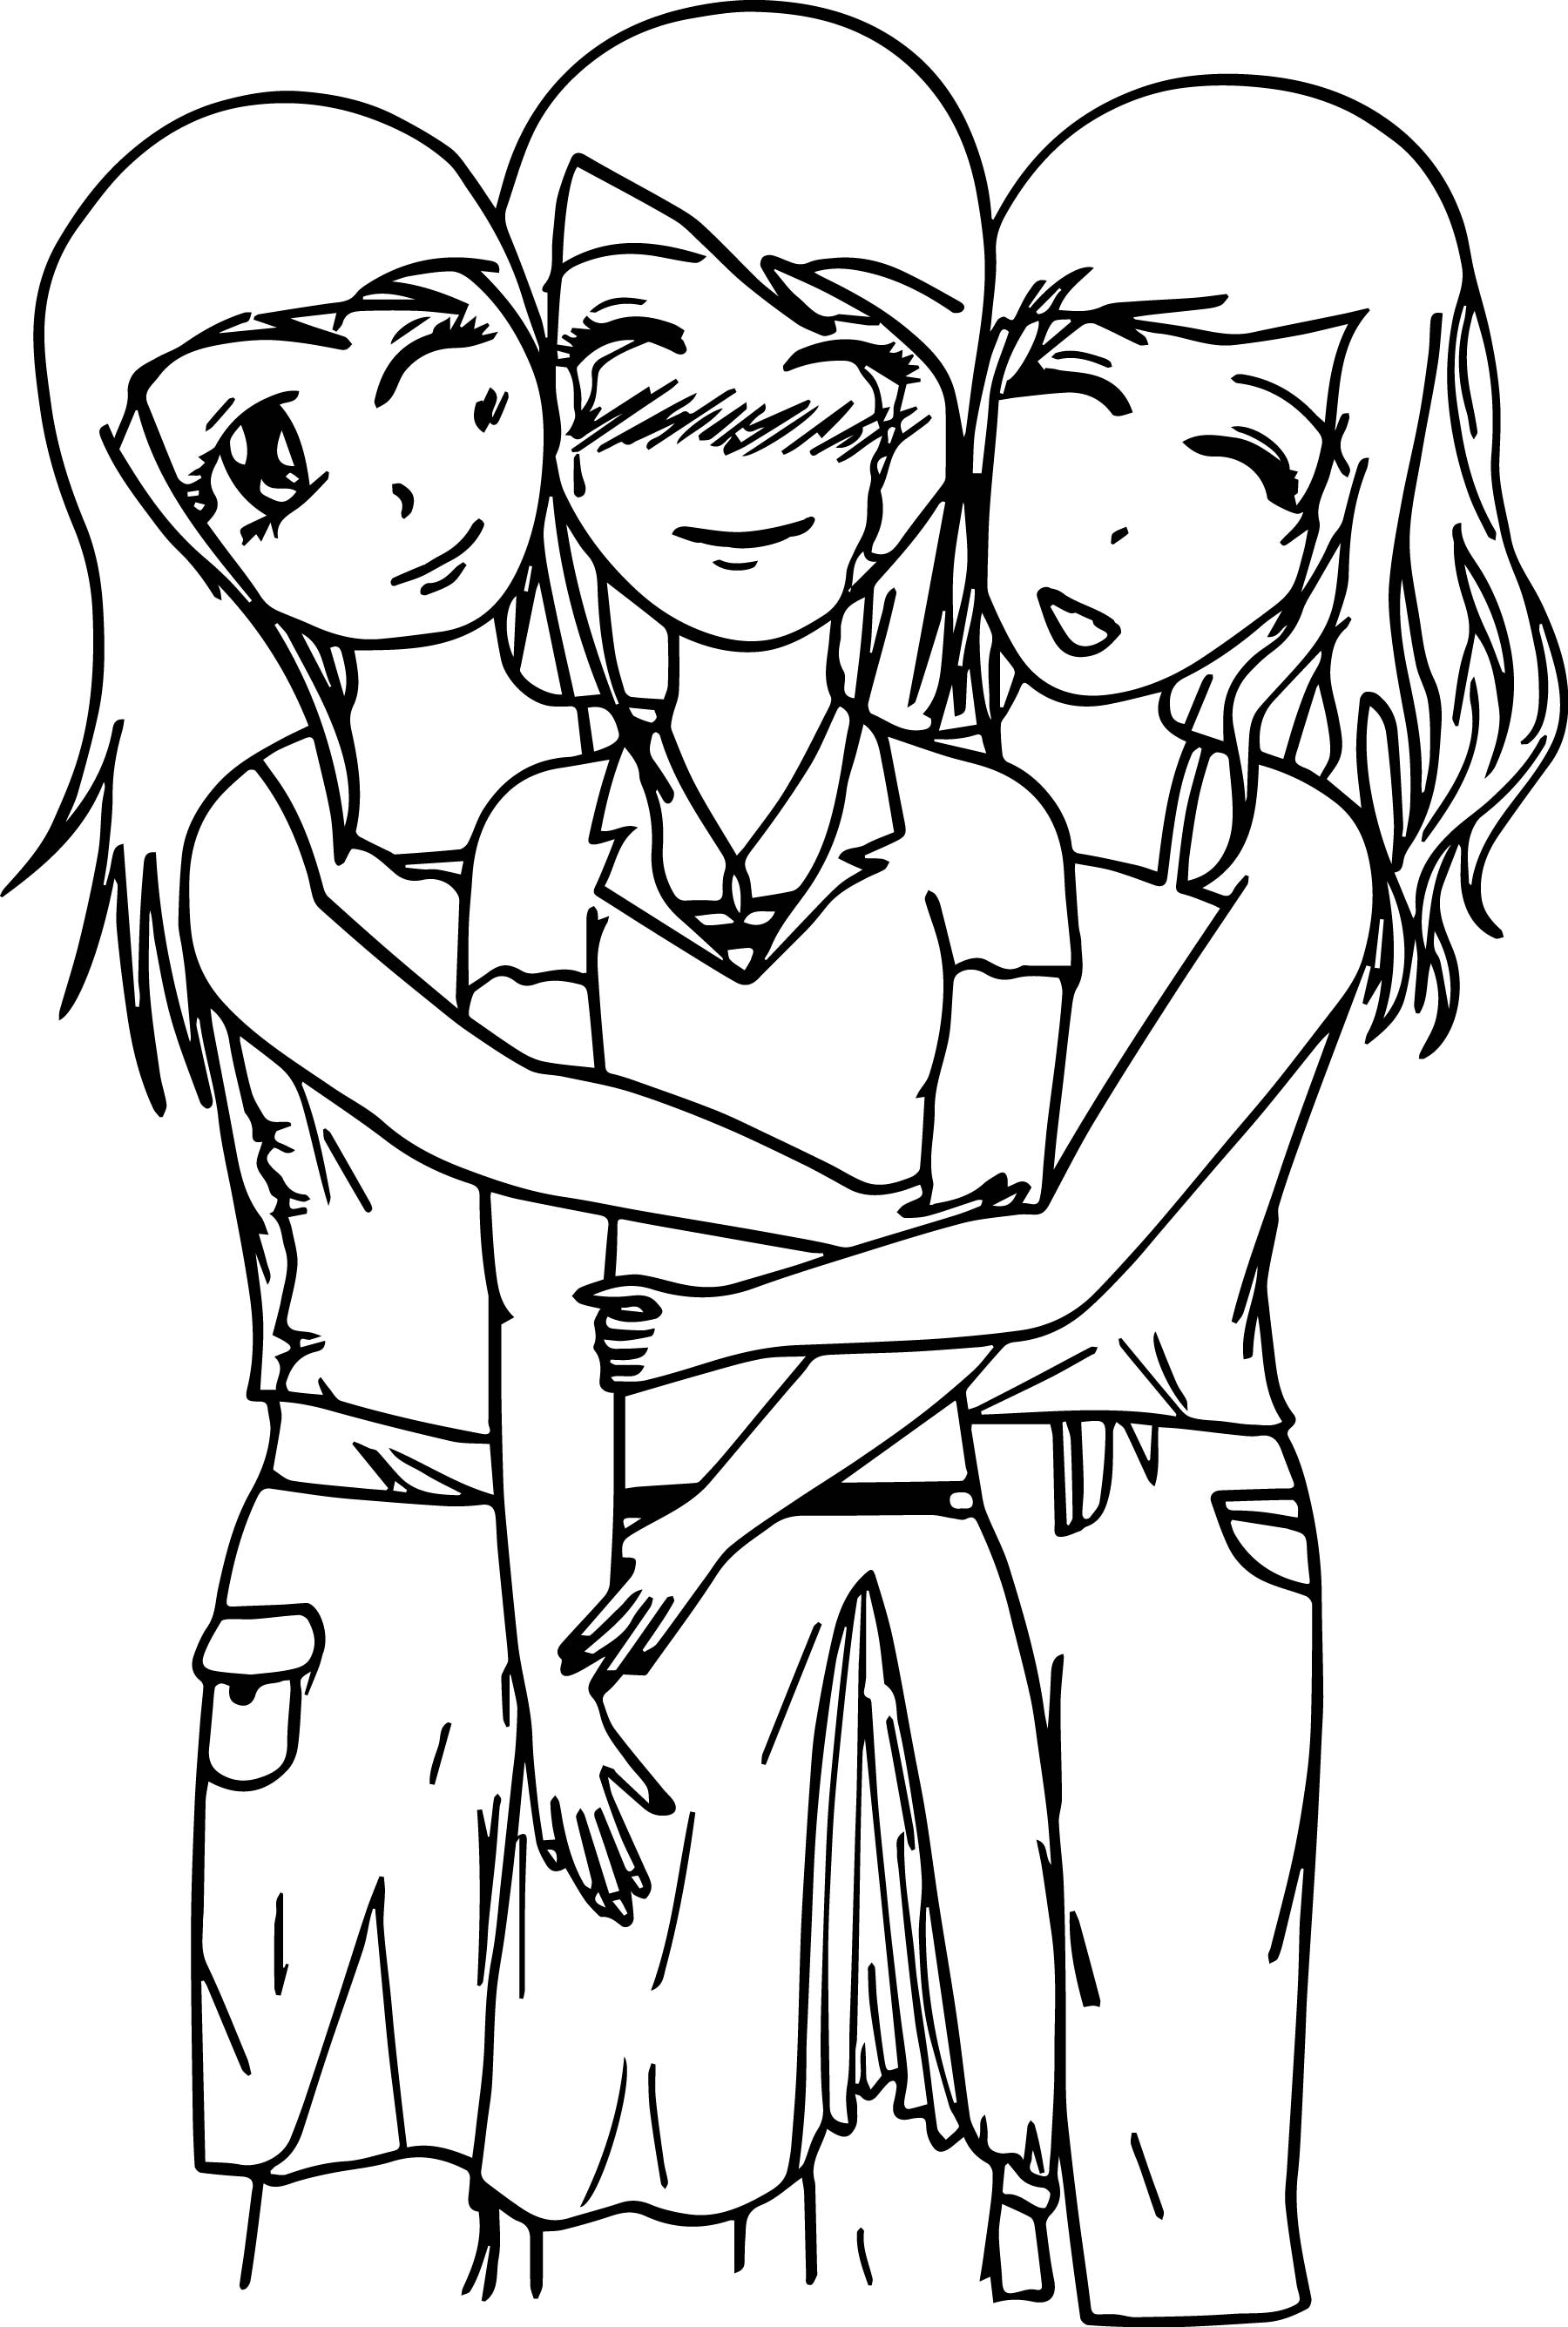 coloring pages for friendship friendship coloring pages best coloring pages for kids for friendship coloring pages